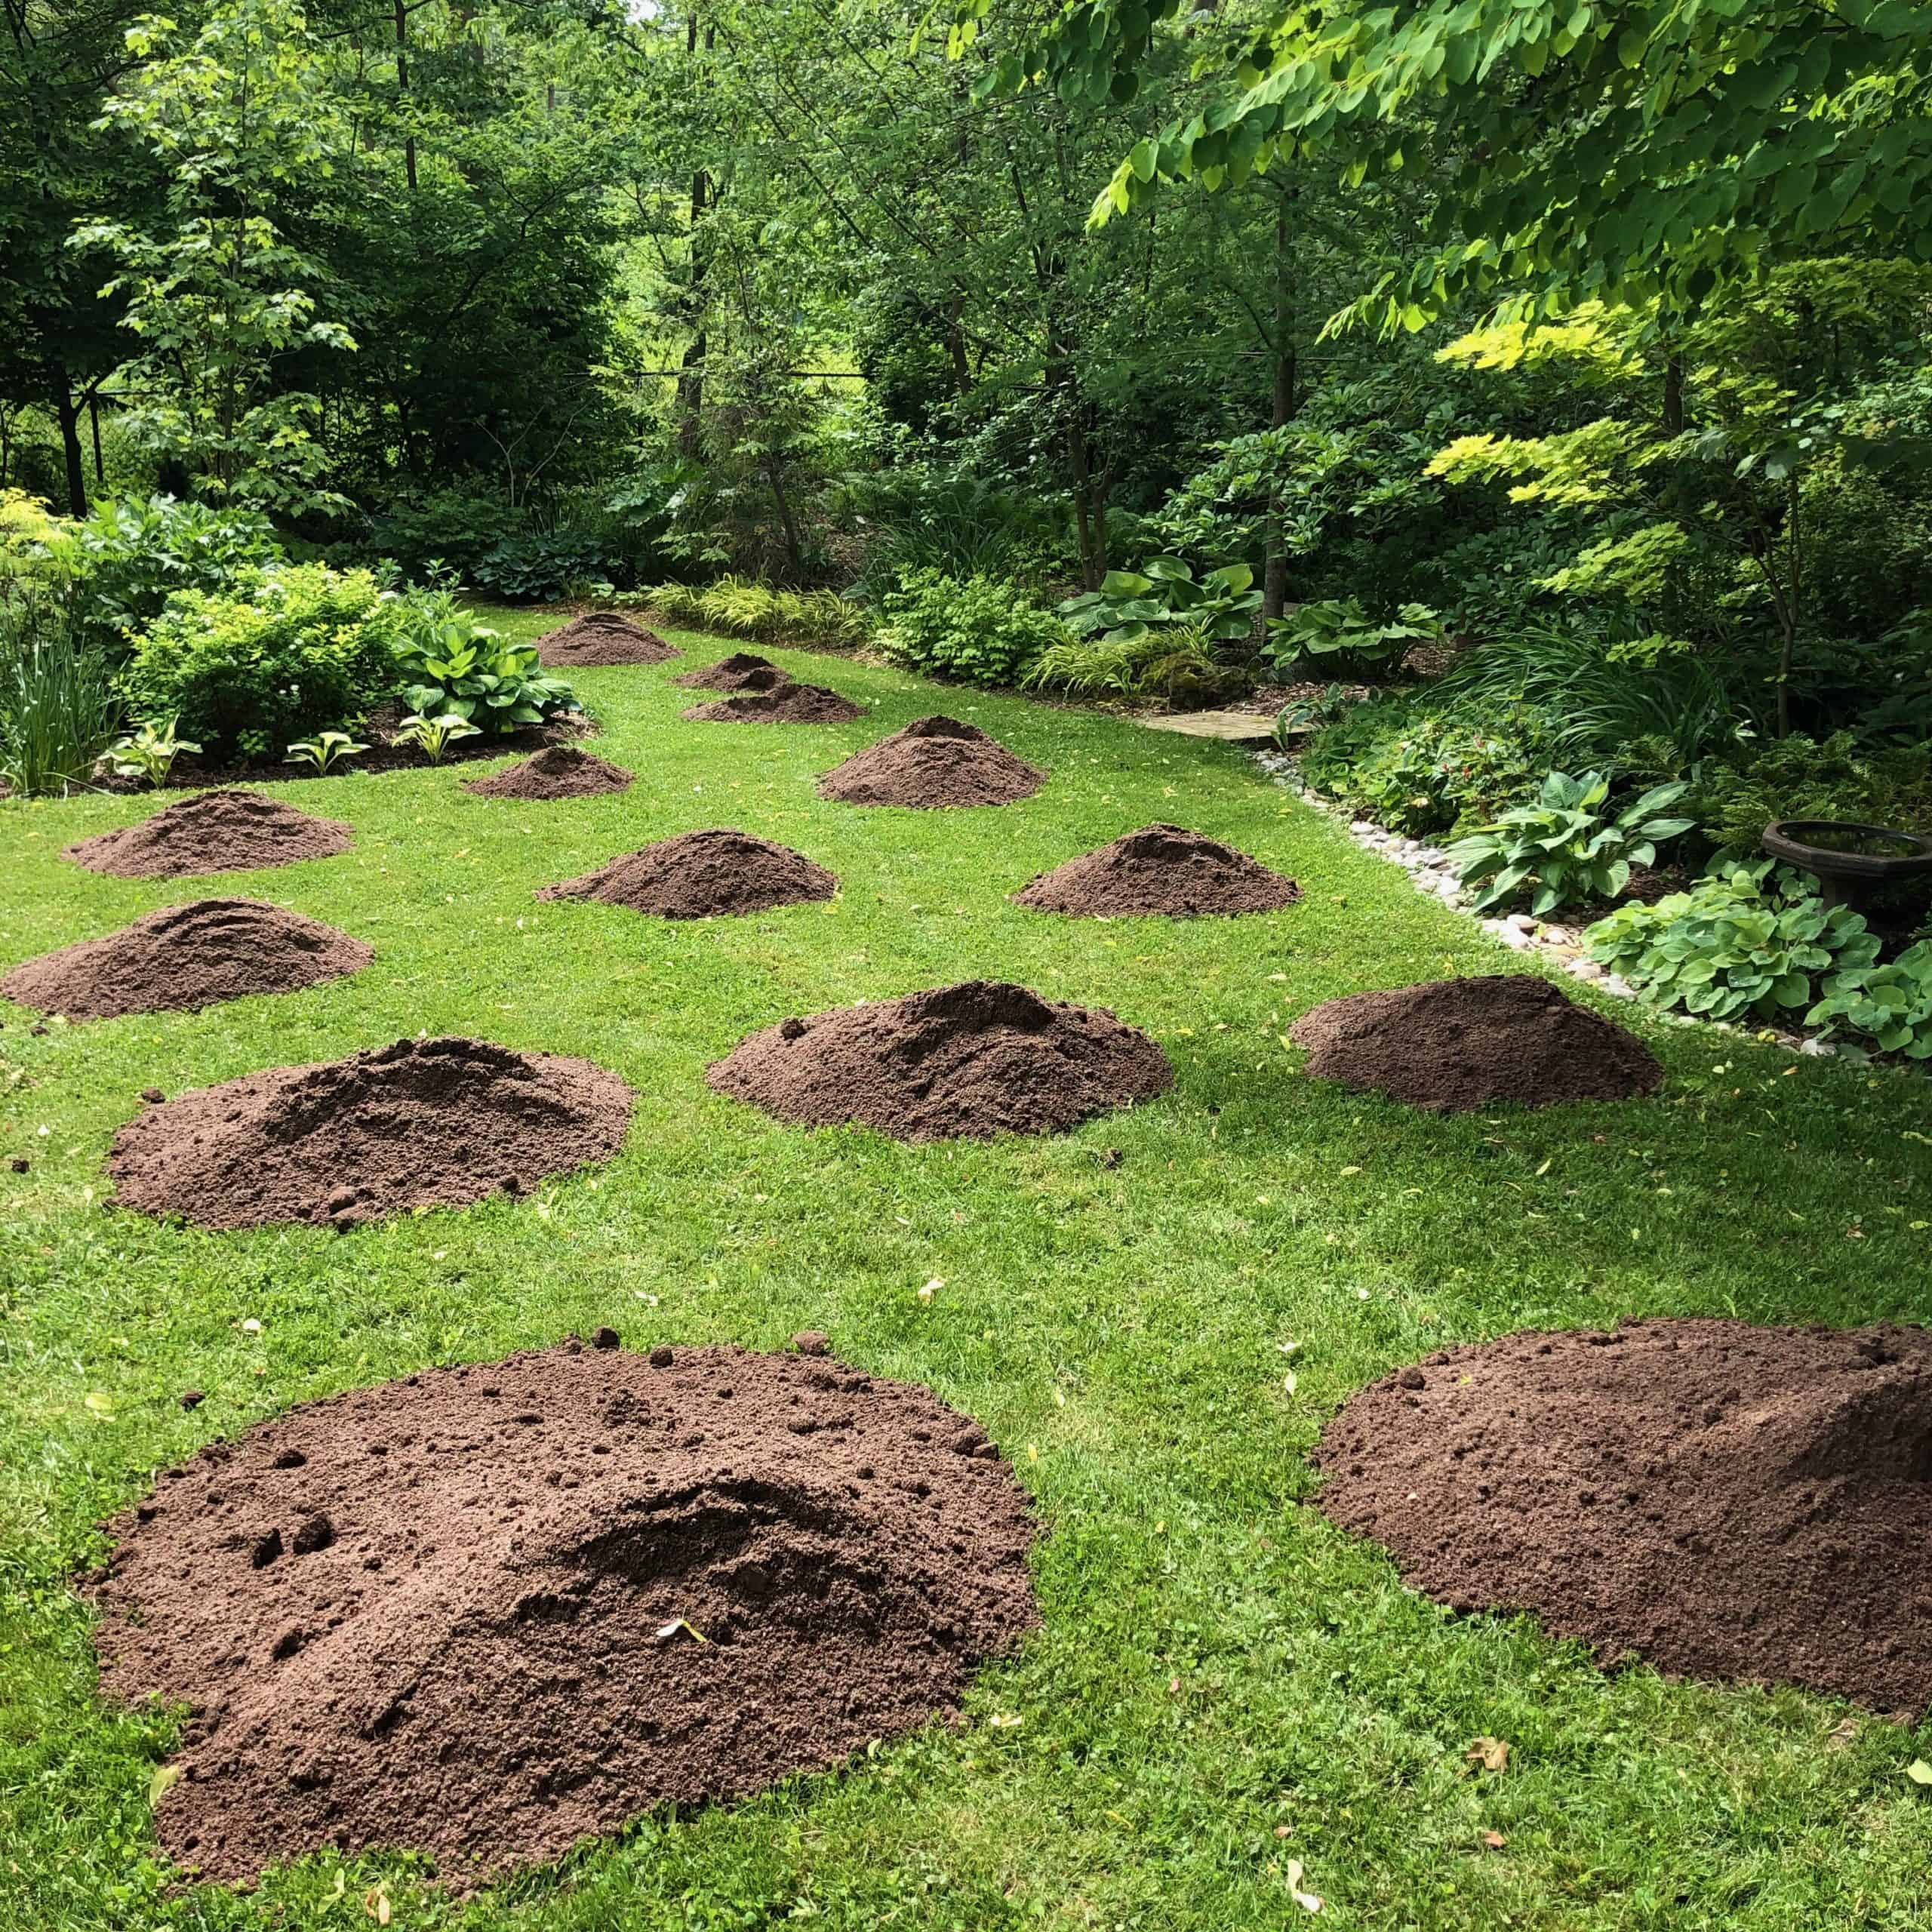 Spreading soil over the lawn.